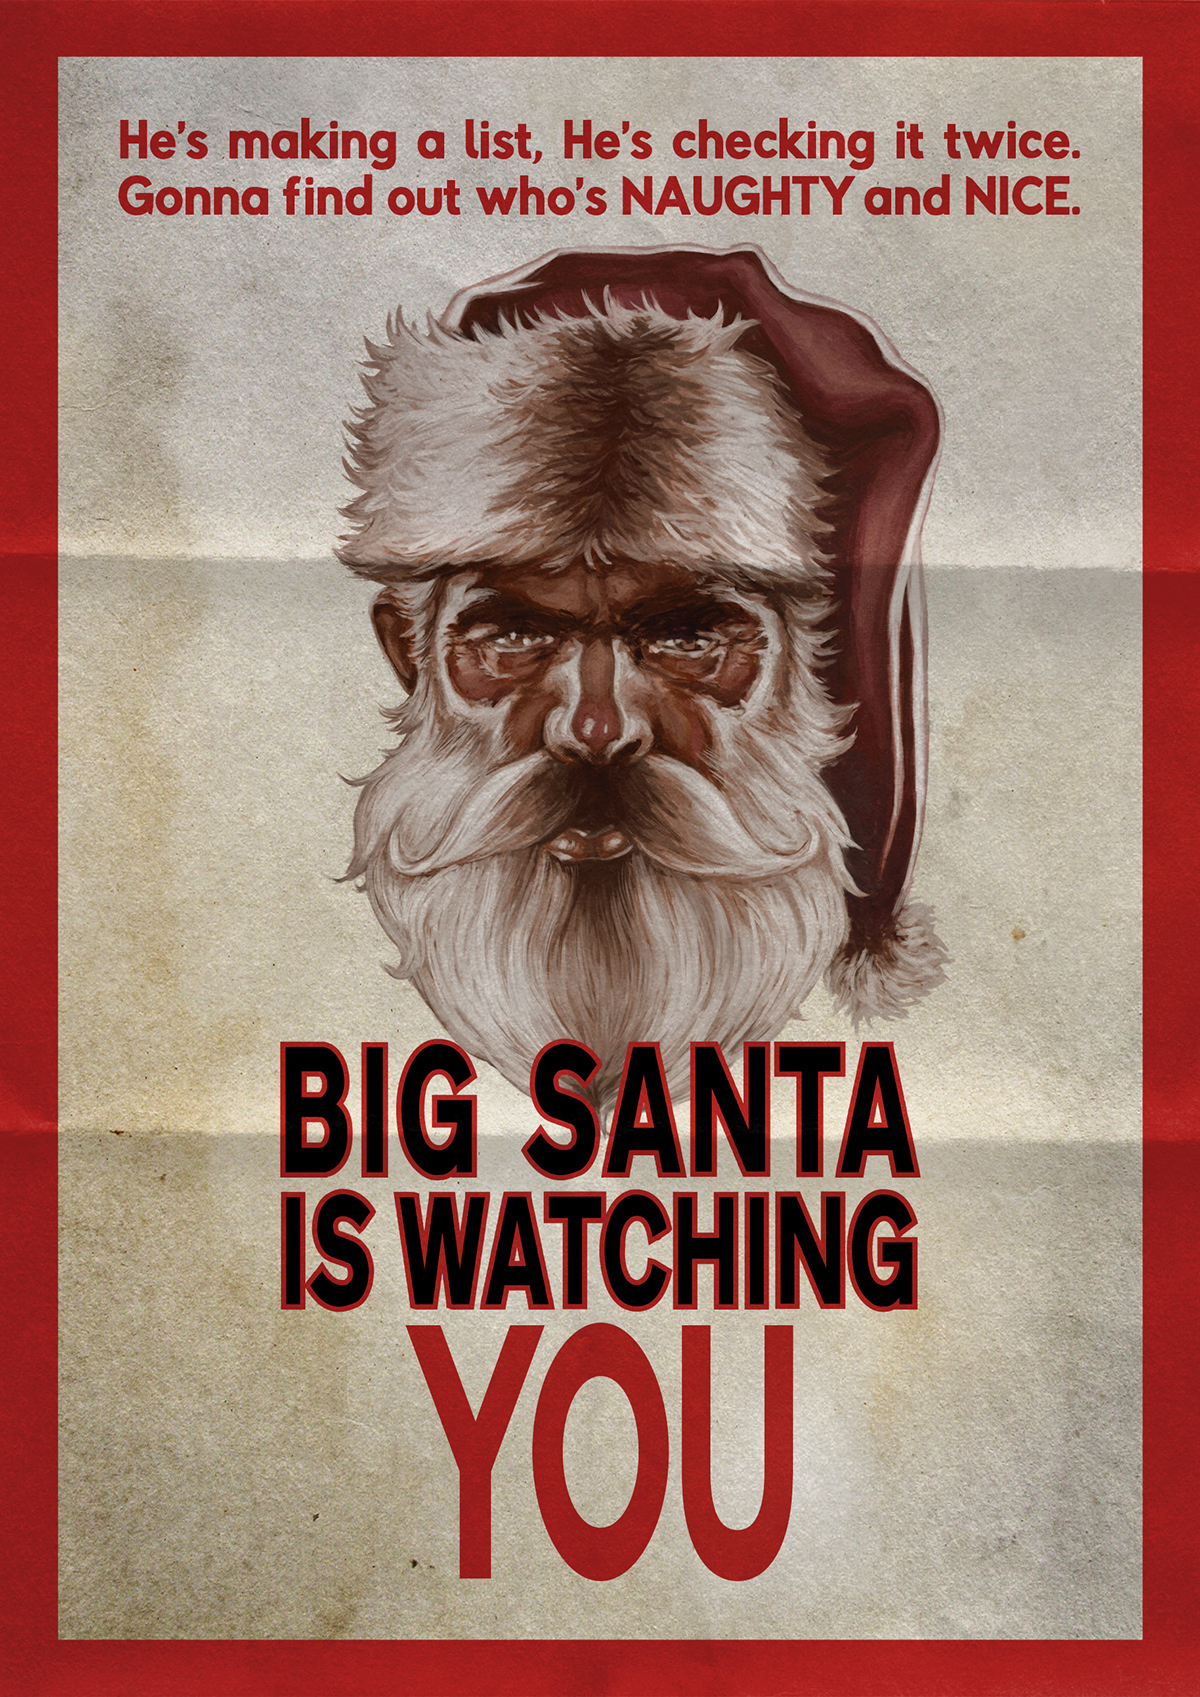 santa is watching you poster hoiday advertising